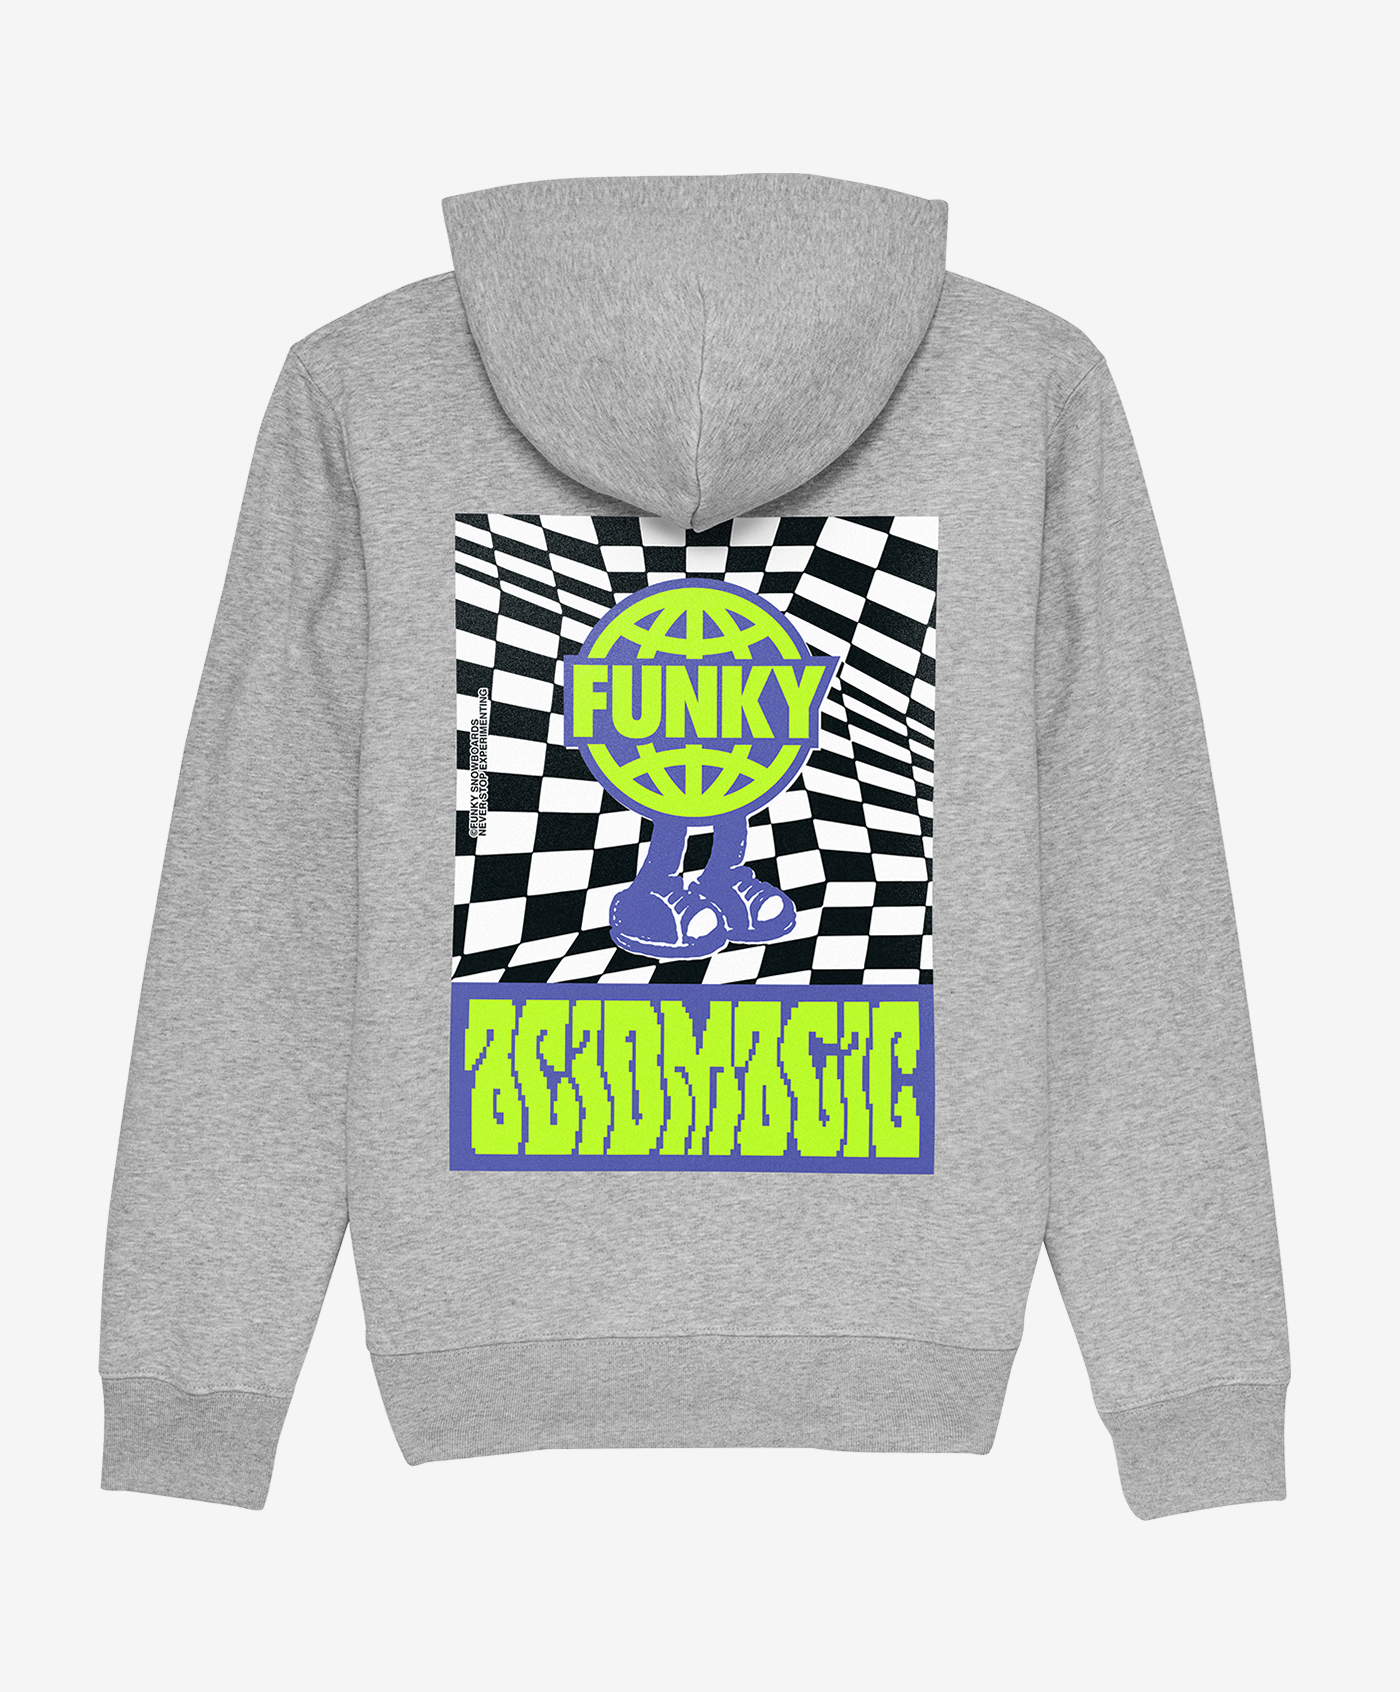 funky acidmagic hoodie grey back